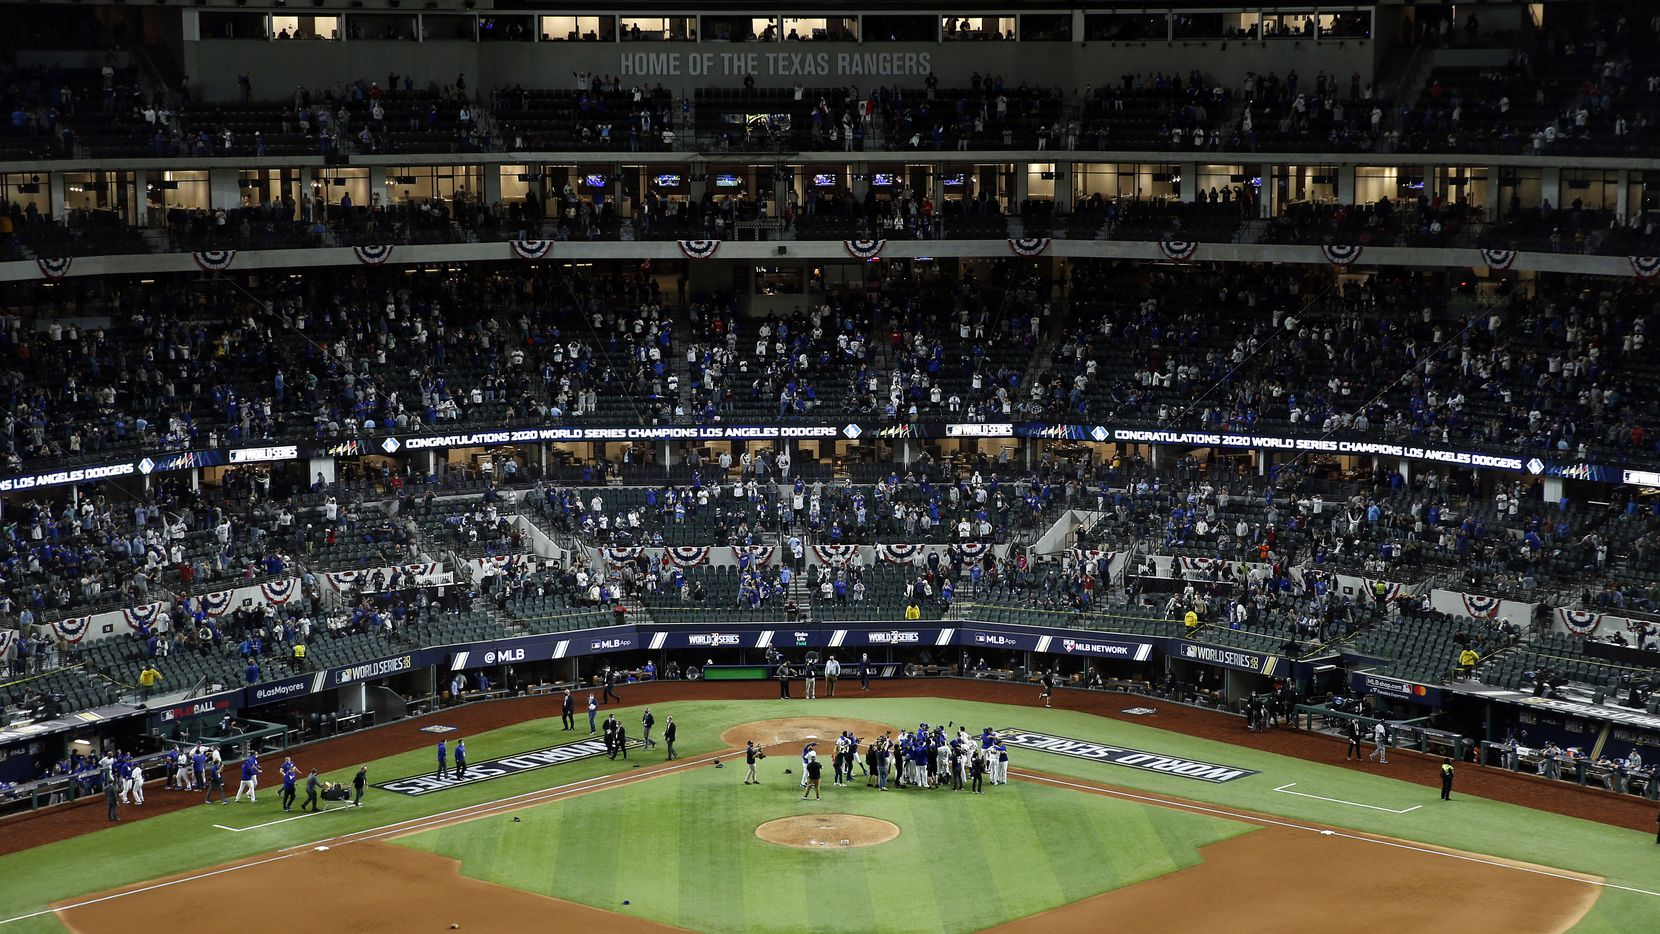 The Los Angeles Dodgers celebrate their World Series win over the Tampa Bay Rays in Game 6 at Globe Life Field in Arlington, Tuesday, October 27, 2020. The Dodgers won, 3-1.